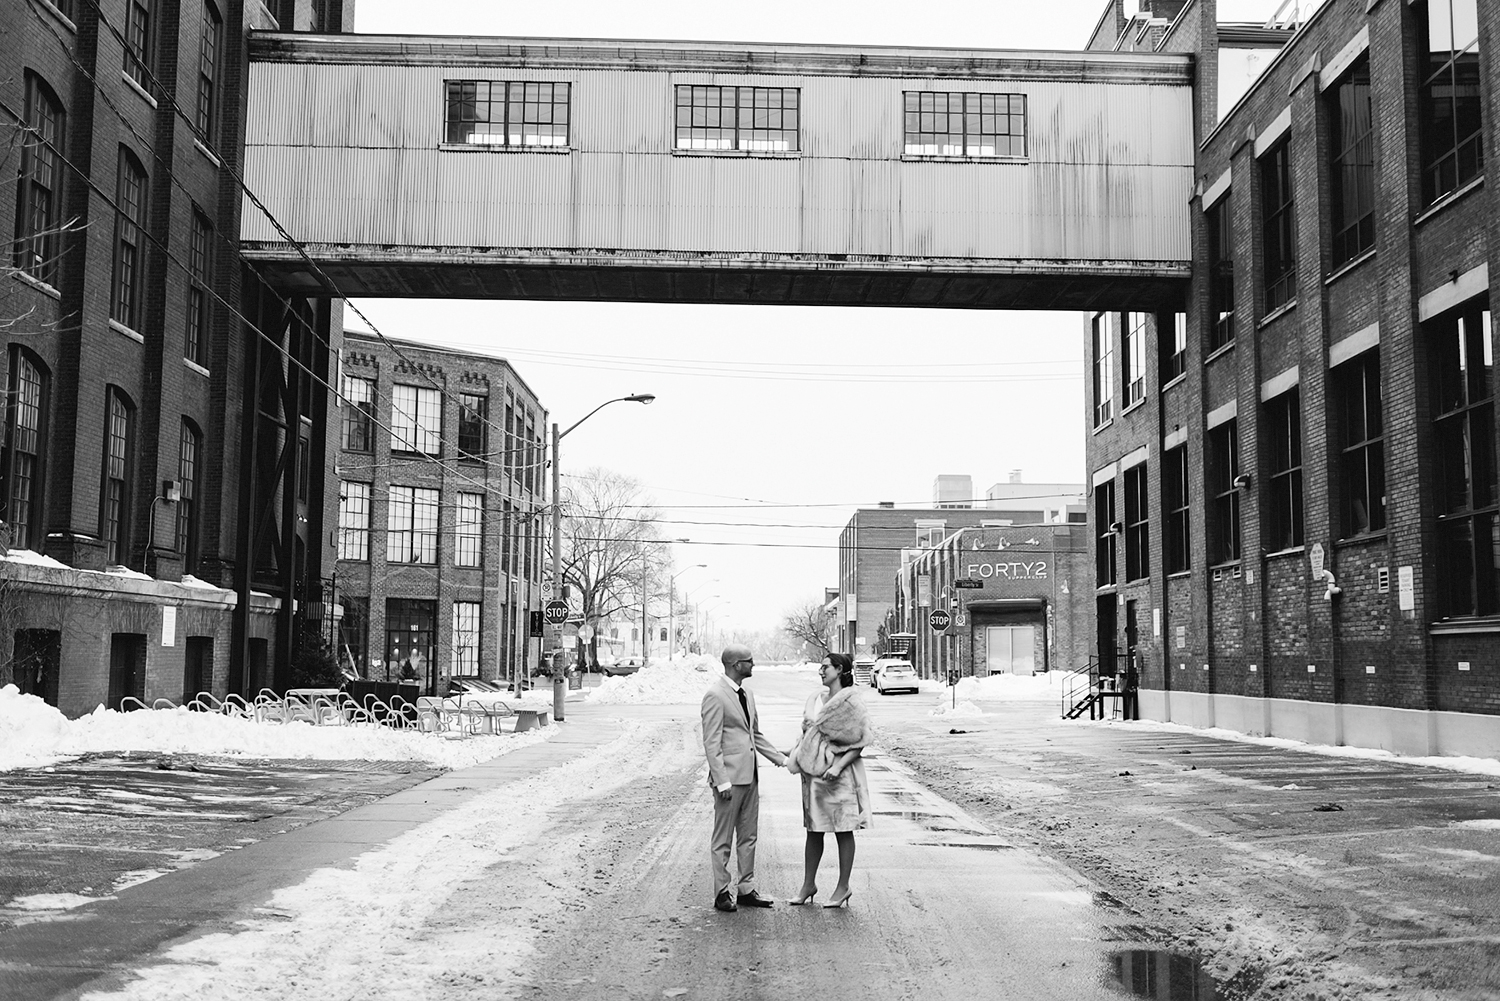 7-first-look-liberty-village-real-wedding-toronto-wedding-photographer-analog-film-candid-documentary-moments-old-toronto-emotional-photojouralistic.jpg